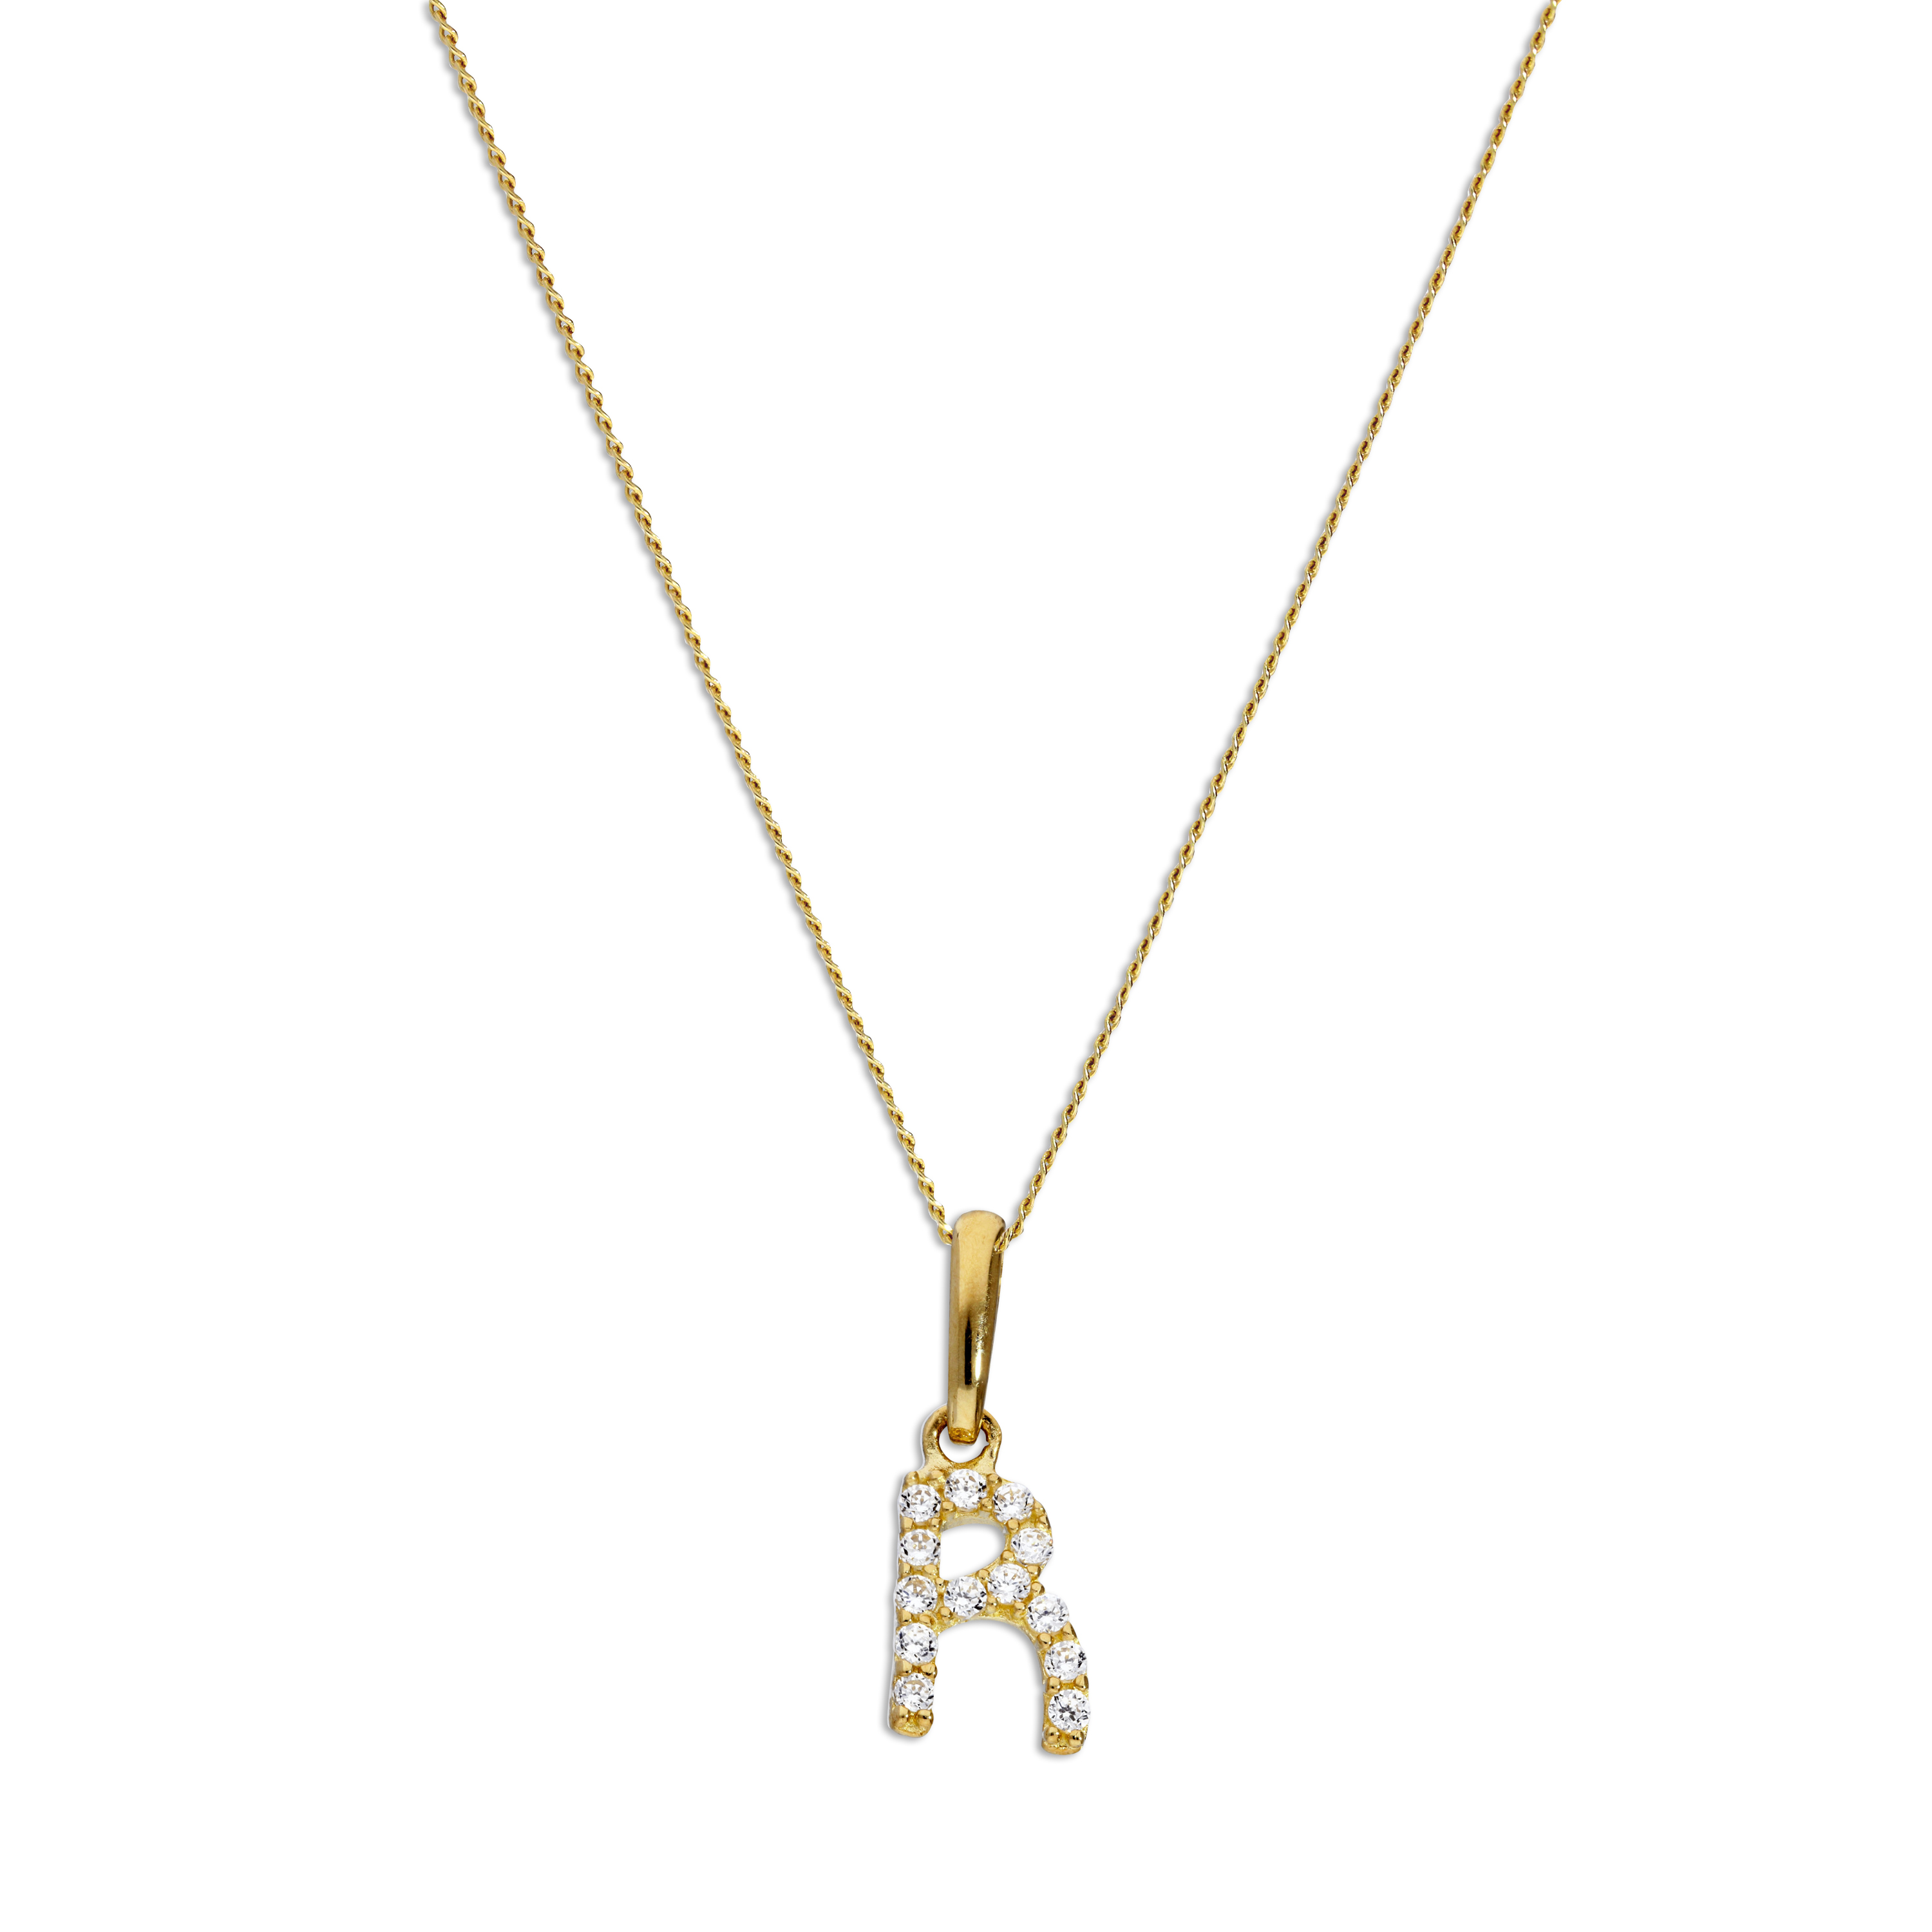 An image of 9ct Gold Clear CZ Crystal Script Alphabet Letter R Necklace 16 Inches Chain